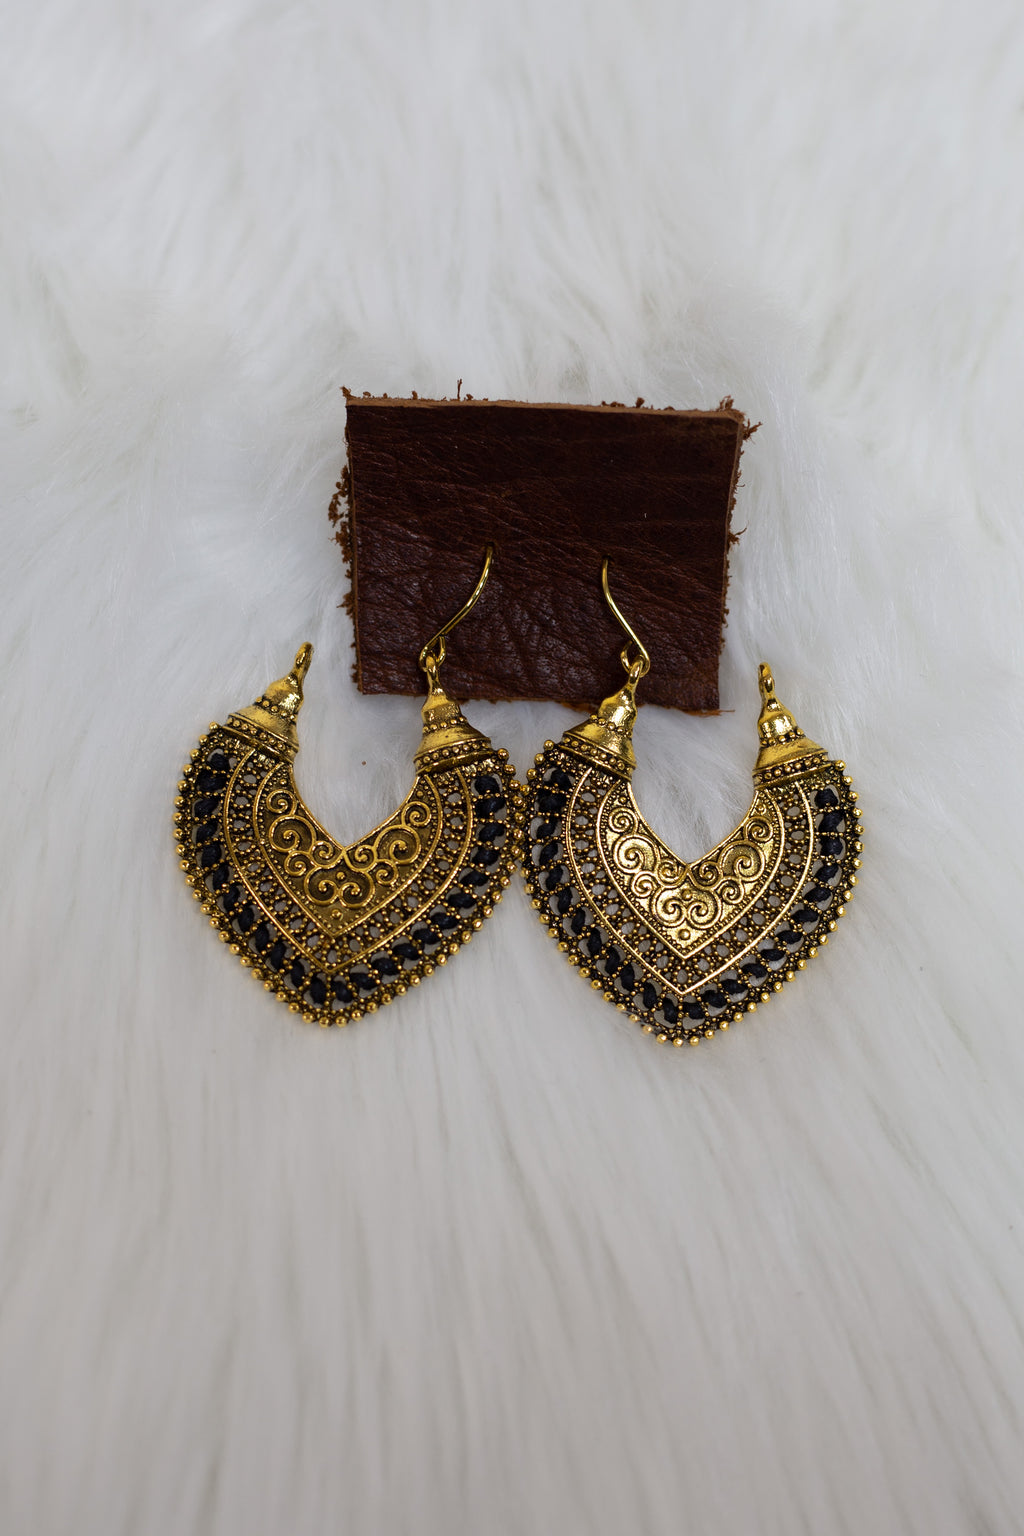 Gold & Black Thread Gypsie Earring - Gypsie Souls